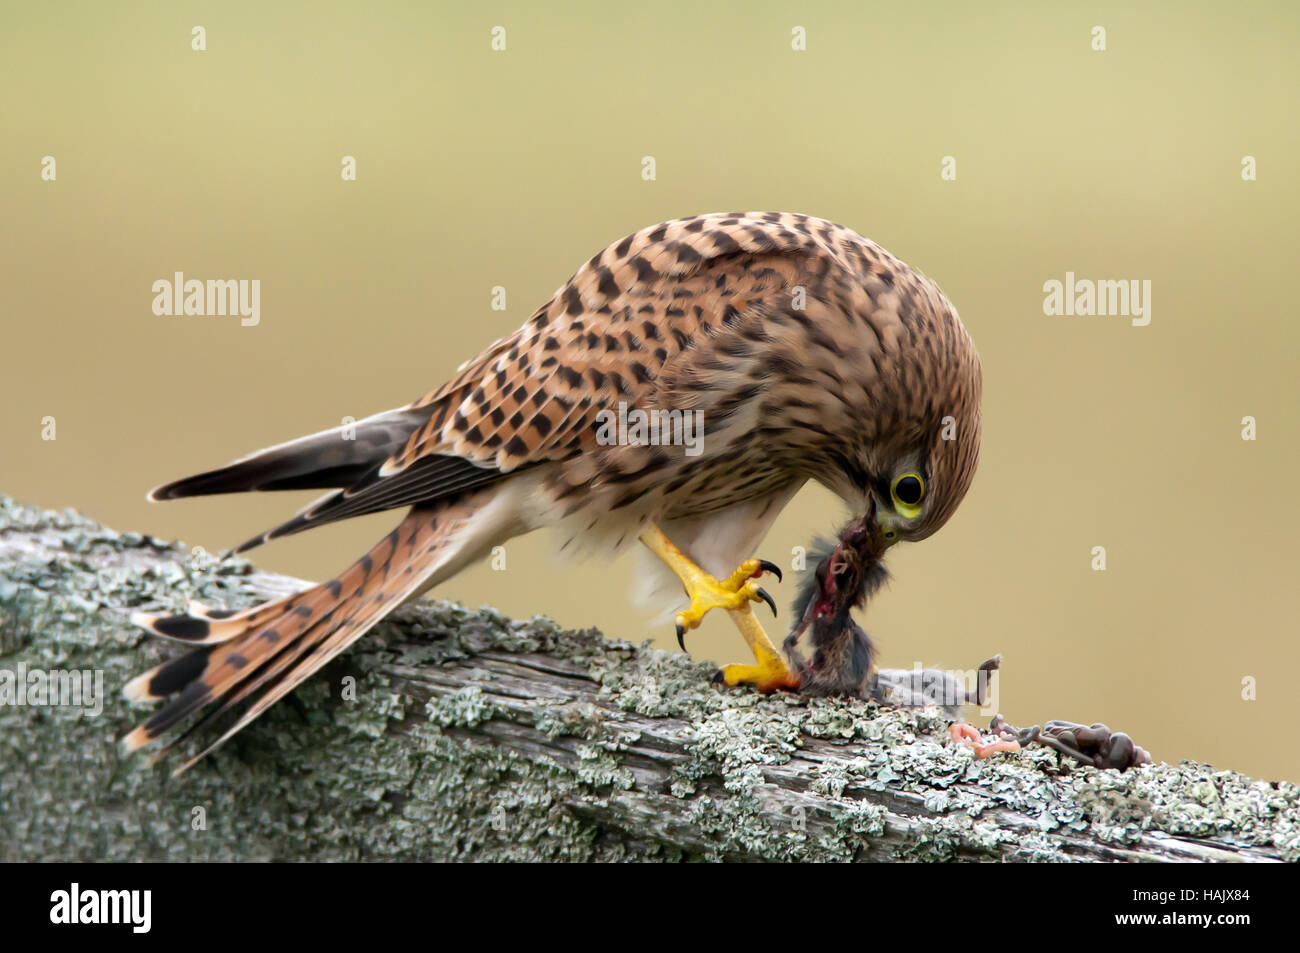 A young kestrel (Falco tinnunculus) eating her breakfast on an old wooden roundpole fence early in the morning. - Stock Image